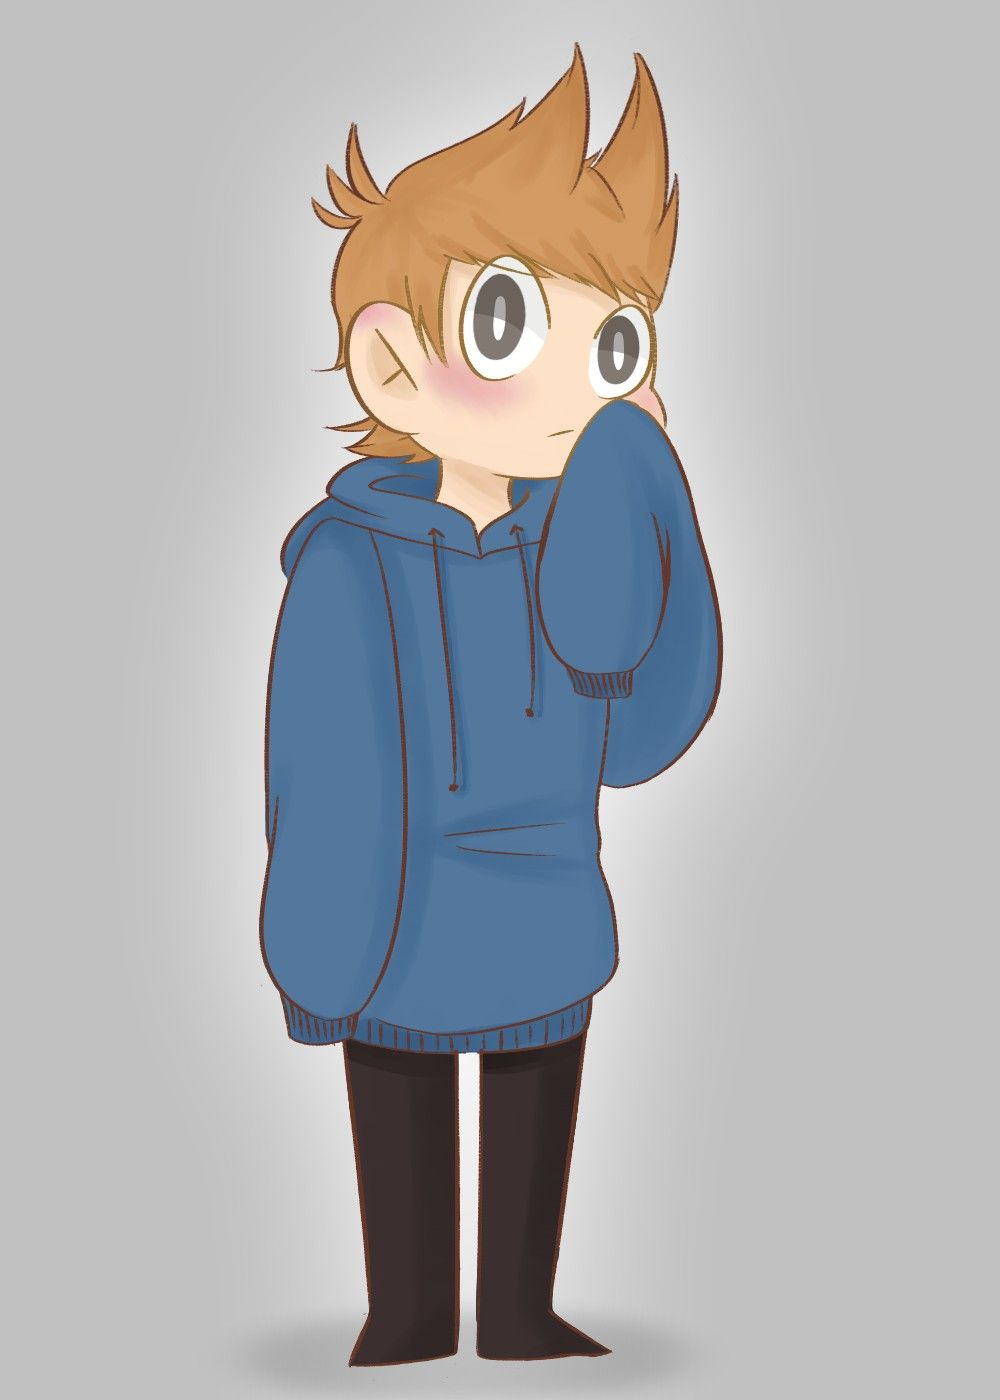 Eddsworld Tord in Tom's hoodie Drawn by watermelon_dinos | Eddsworld